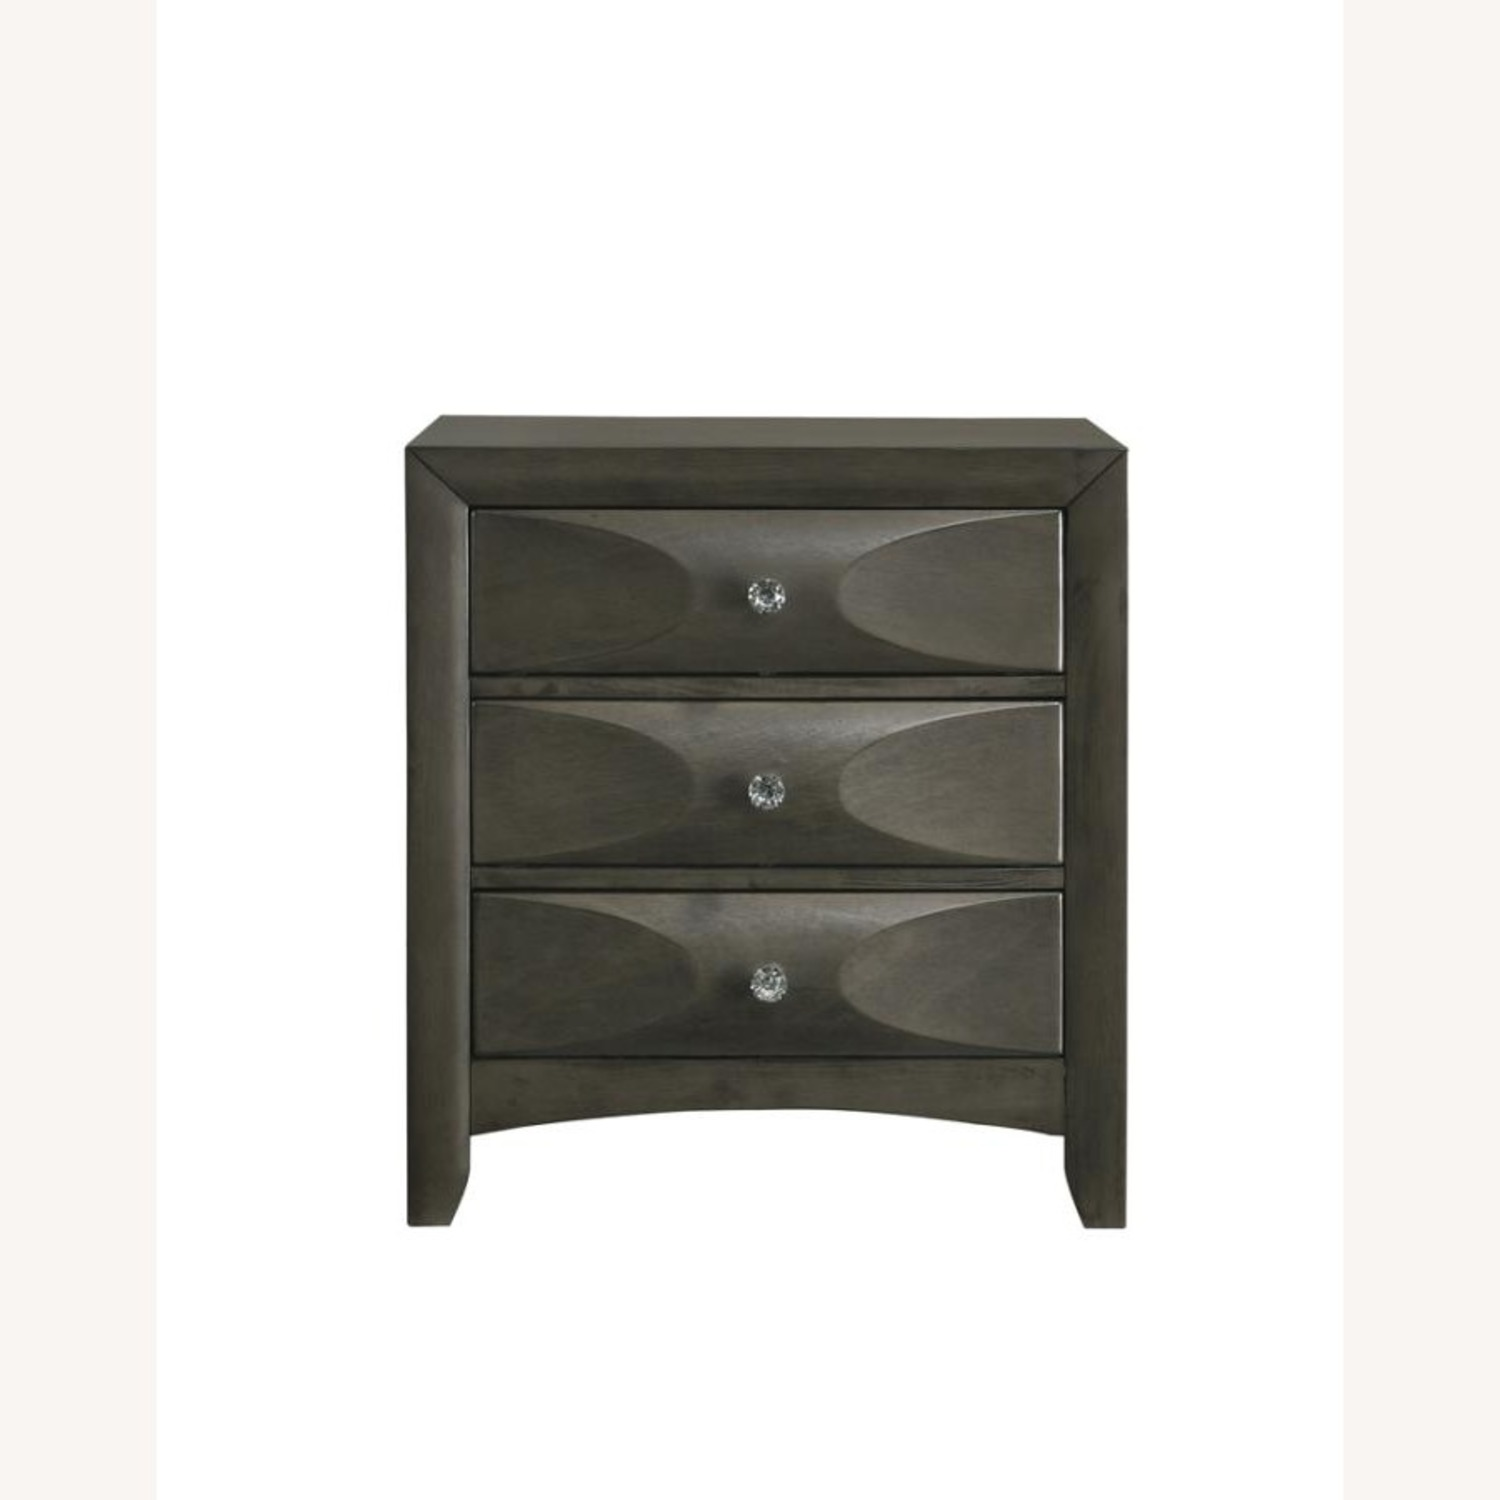 Nightstand In Mod Grey Finish W/ 3D Bow Tie Fronts - image-1